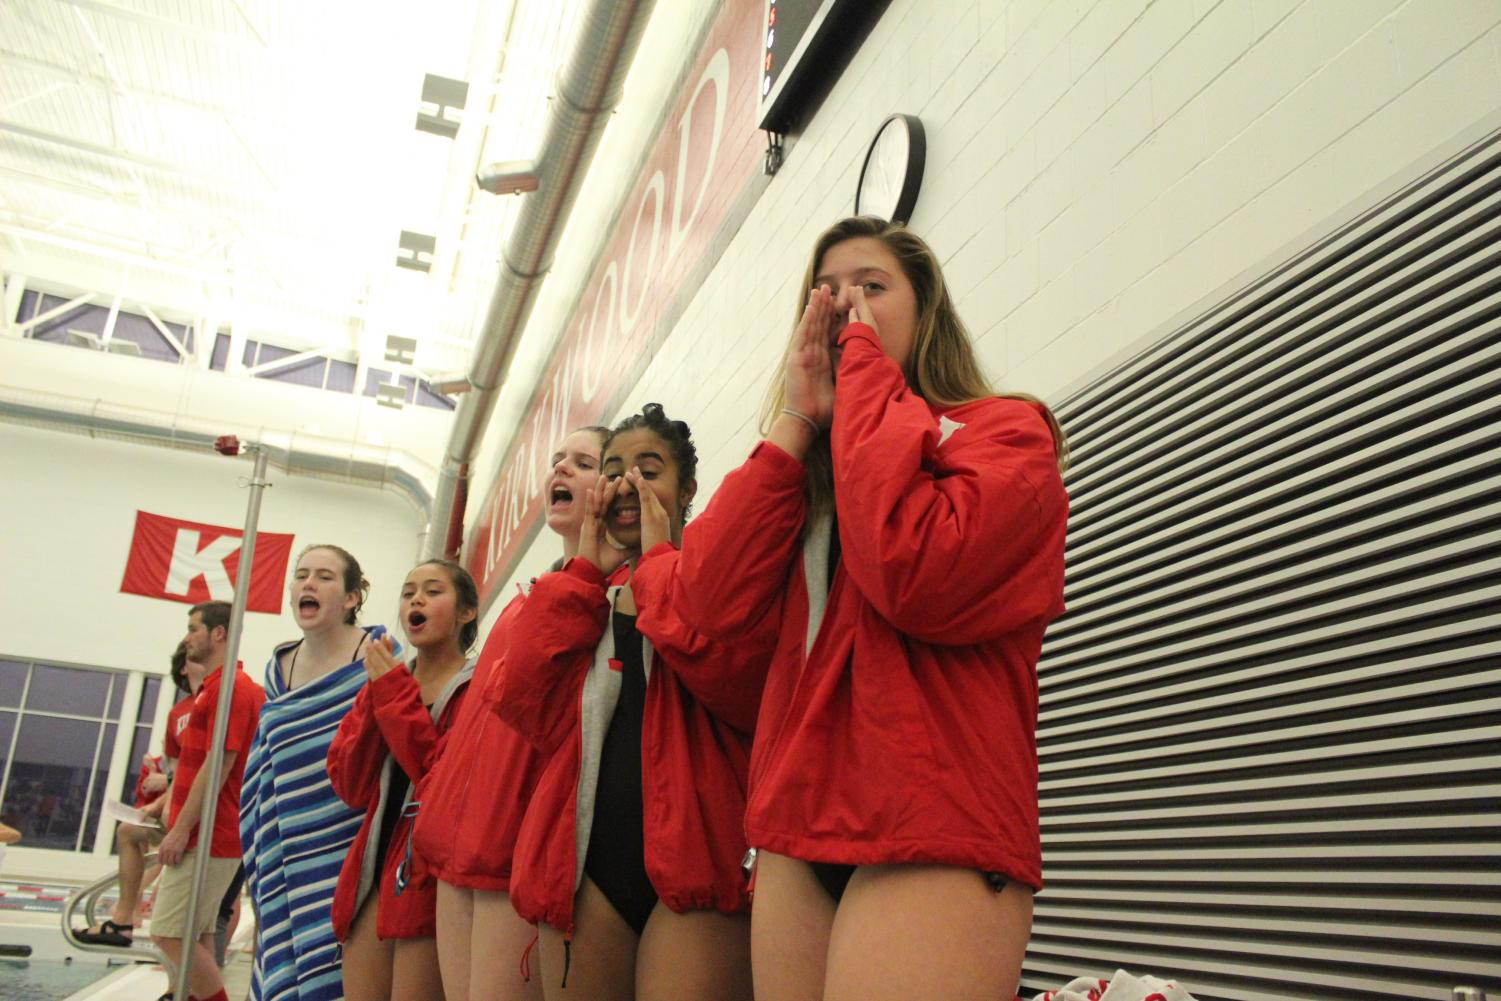 Cheering+for+their+teammates%2C+members+of+the+girls+swim+and+dive+team+stand+on+the+sidelines+during+the+Kirkwood+v.+Webster+swim+meet+Nov.+27.%0A